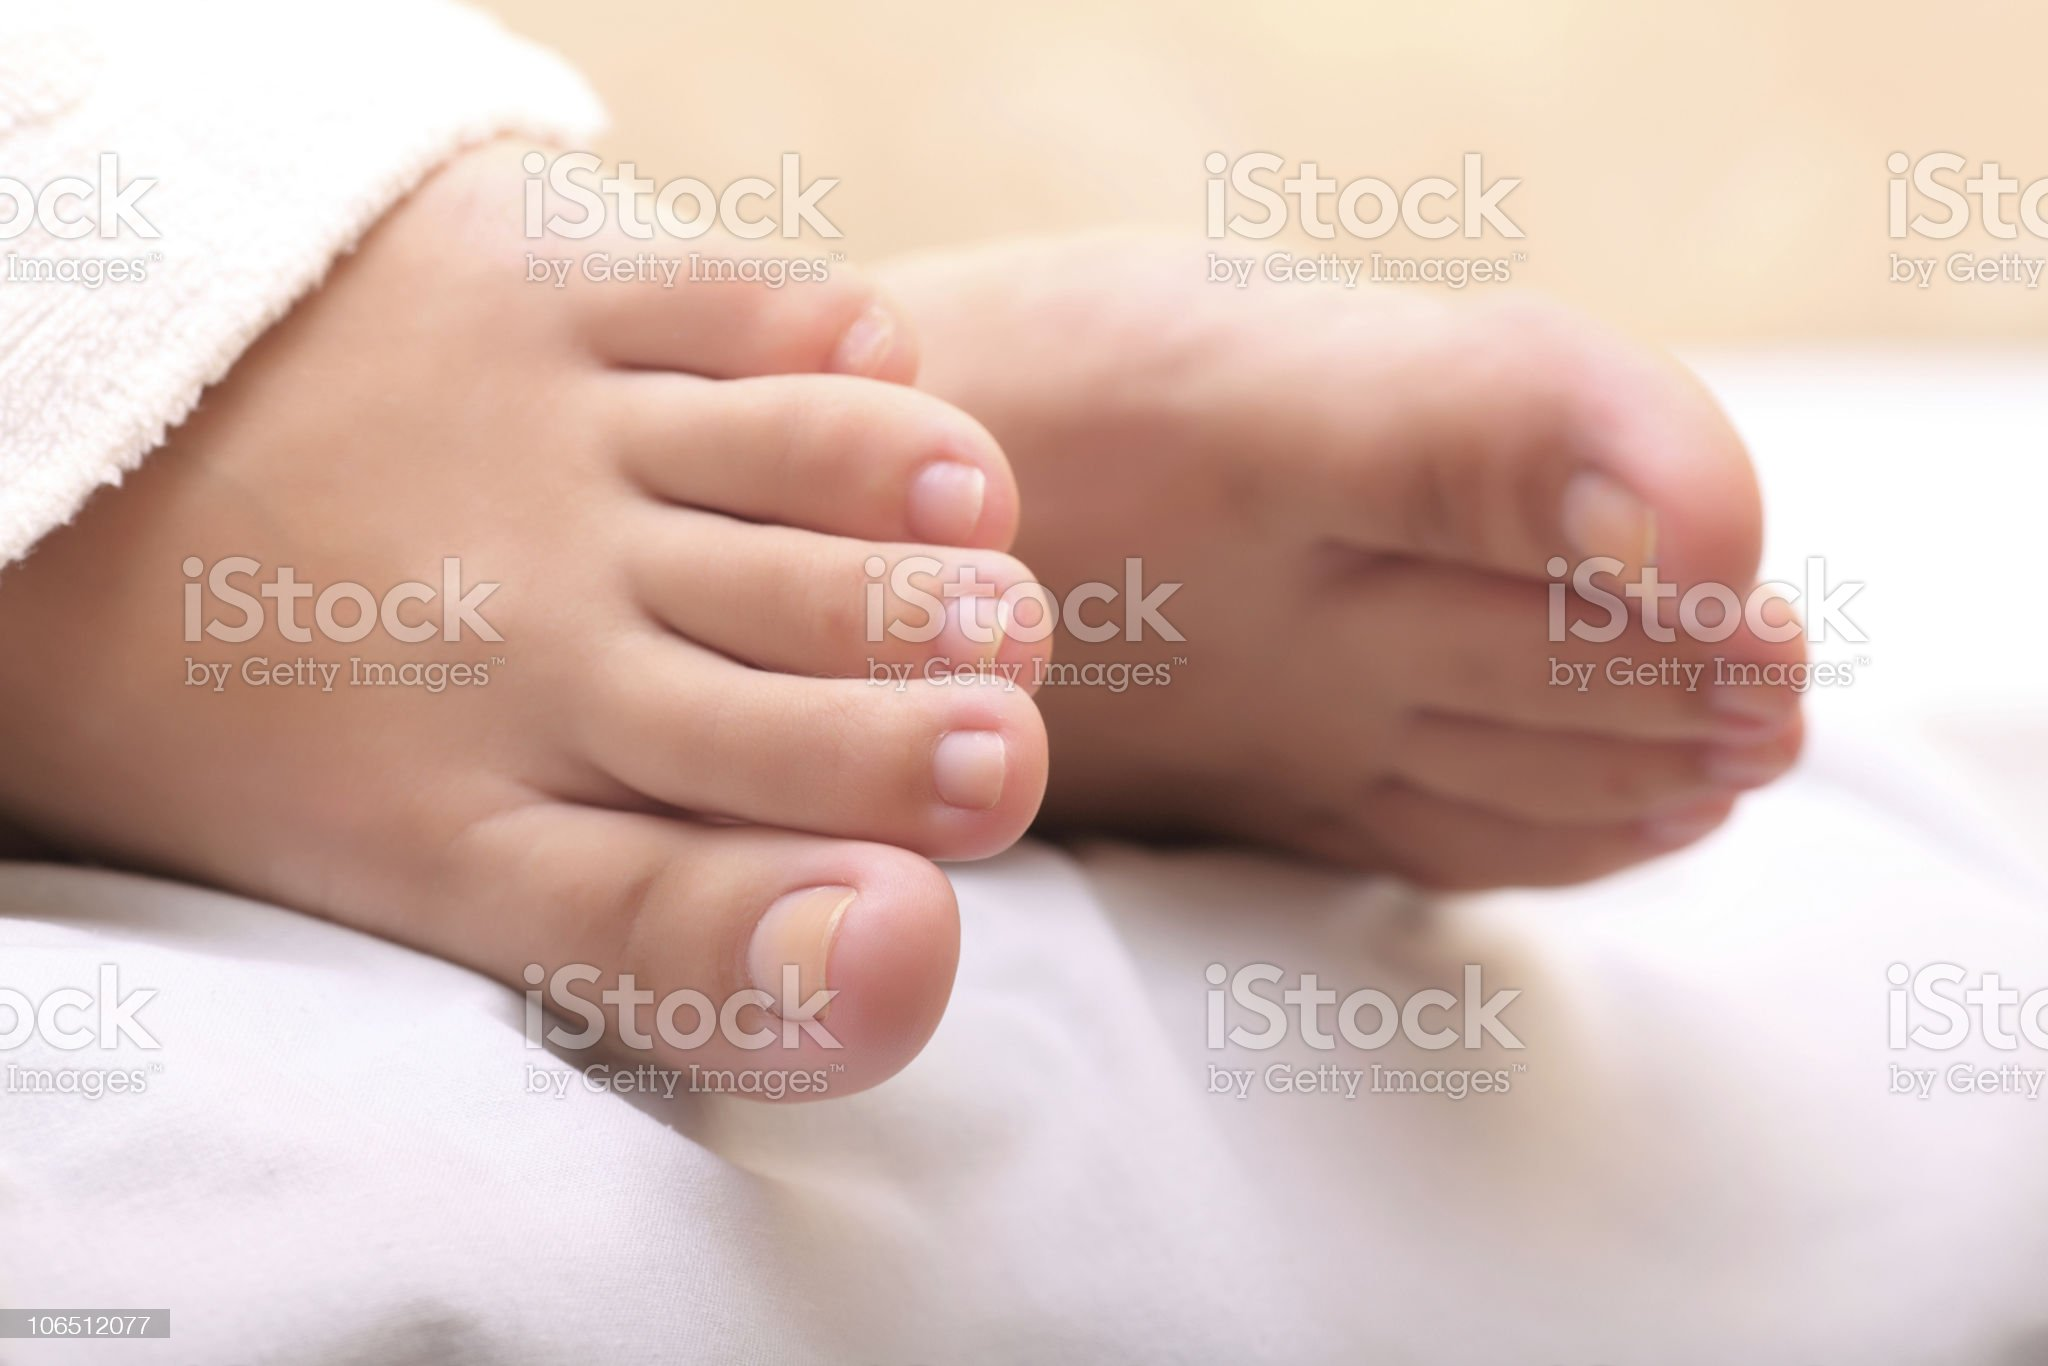 Close-up of a woman's feet on white linen royalty-free stock photo